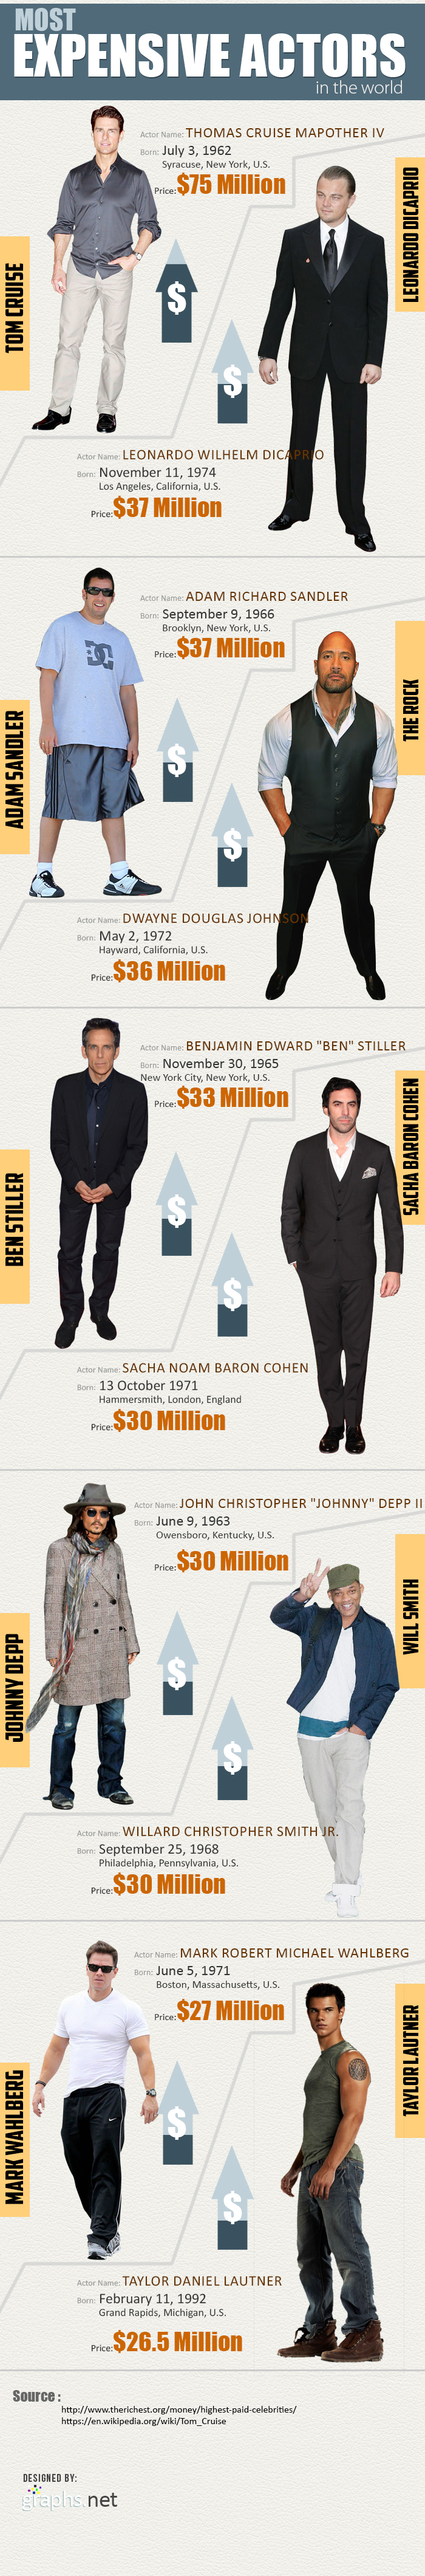 Most Expensive Actors in the World